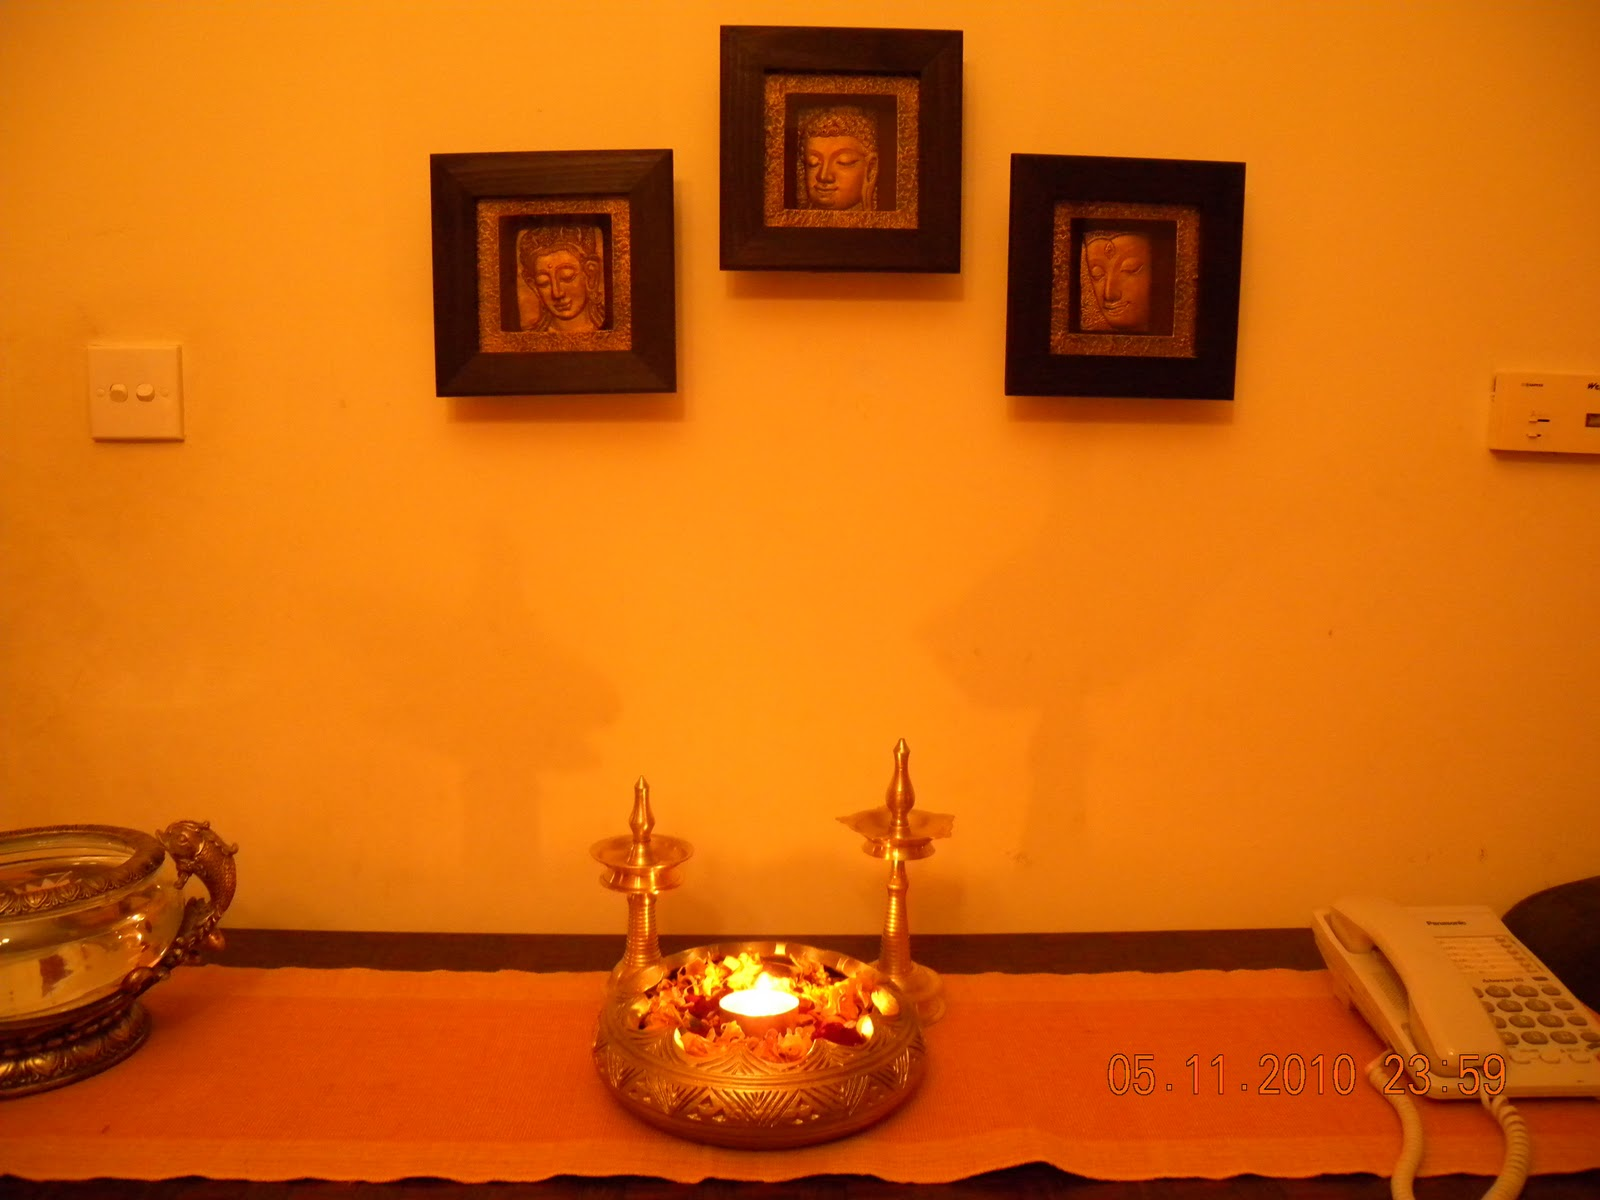 Indian home decorations during diwali diwali home for Home decorations ideas for diwali